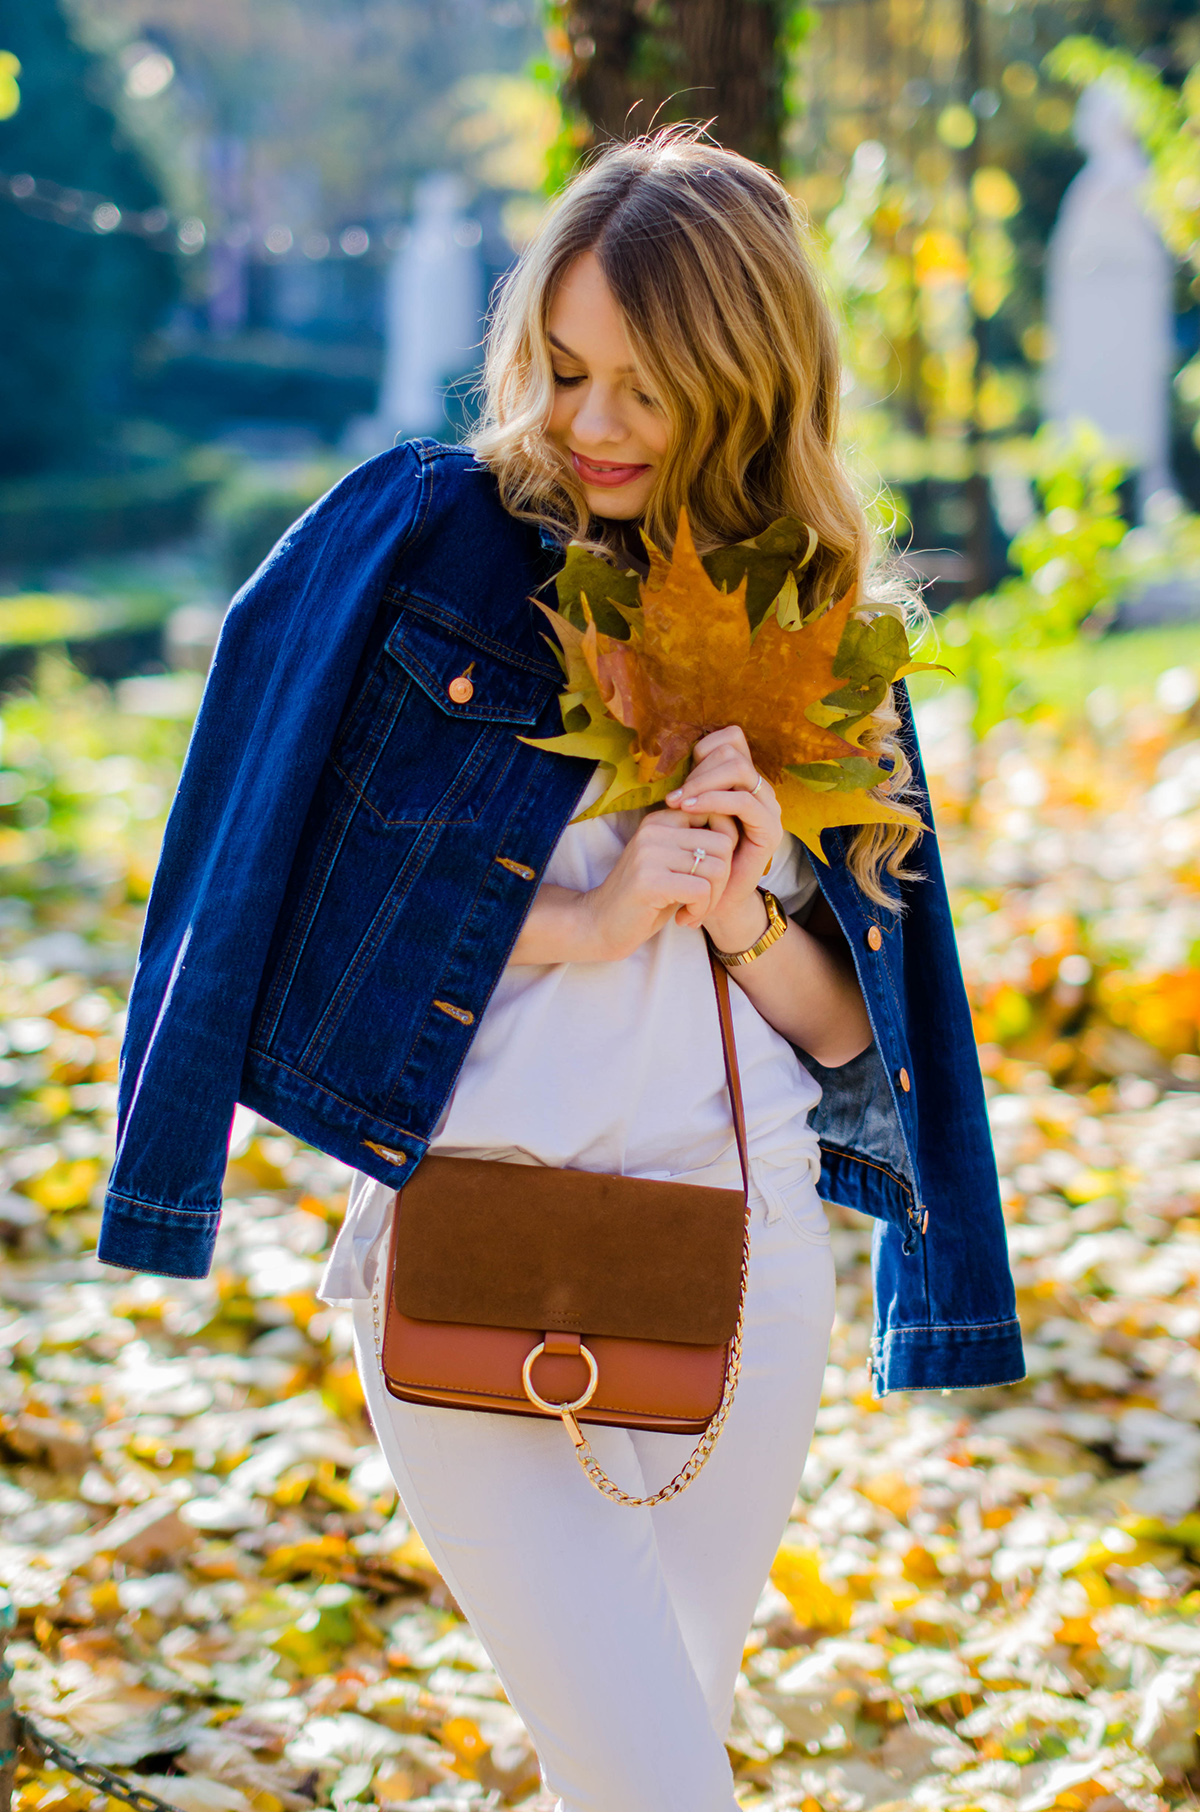 ALL-WHITE-OUTFIT-DENIM-JACKET-CHLOE-BAG-AUTUMN (3)